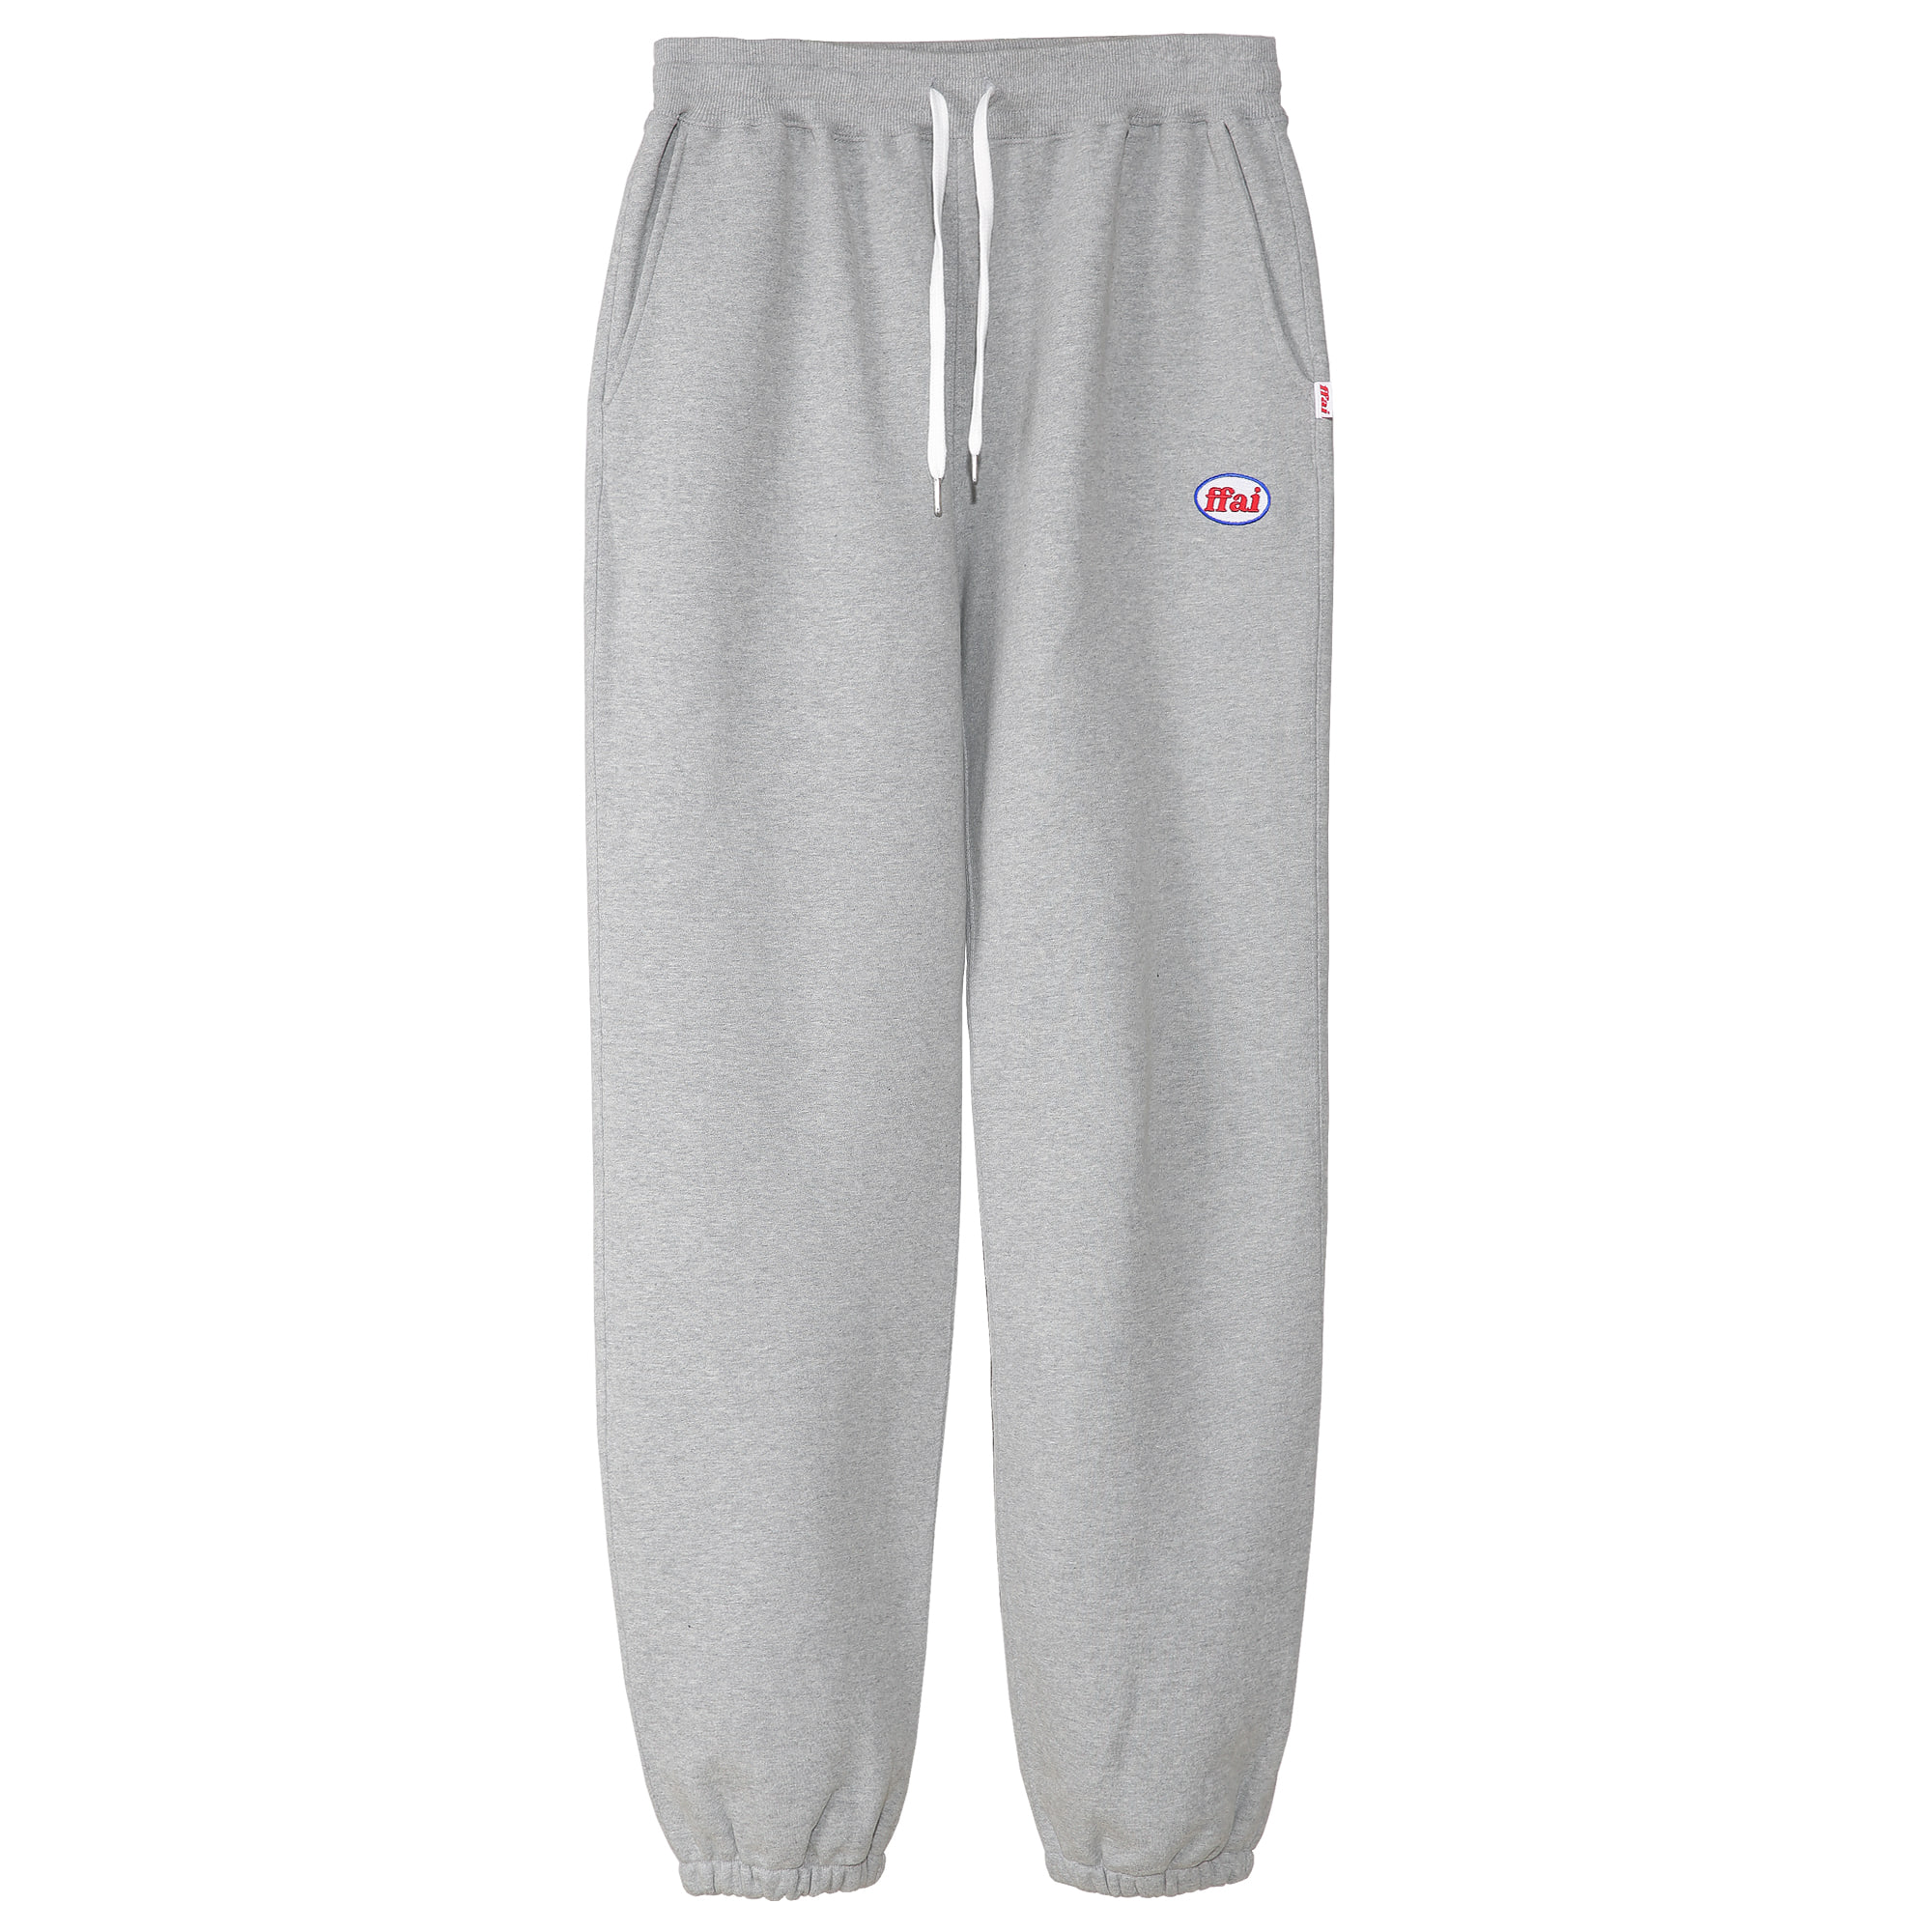 -[FFAI]  - OP.30 SWEAT PANTS (MELANGE GRAY)